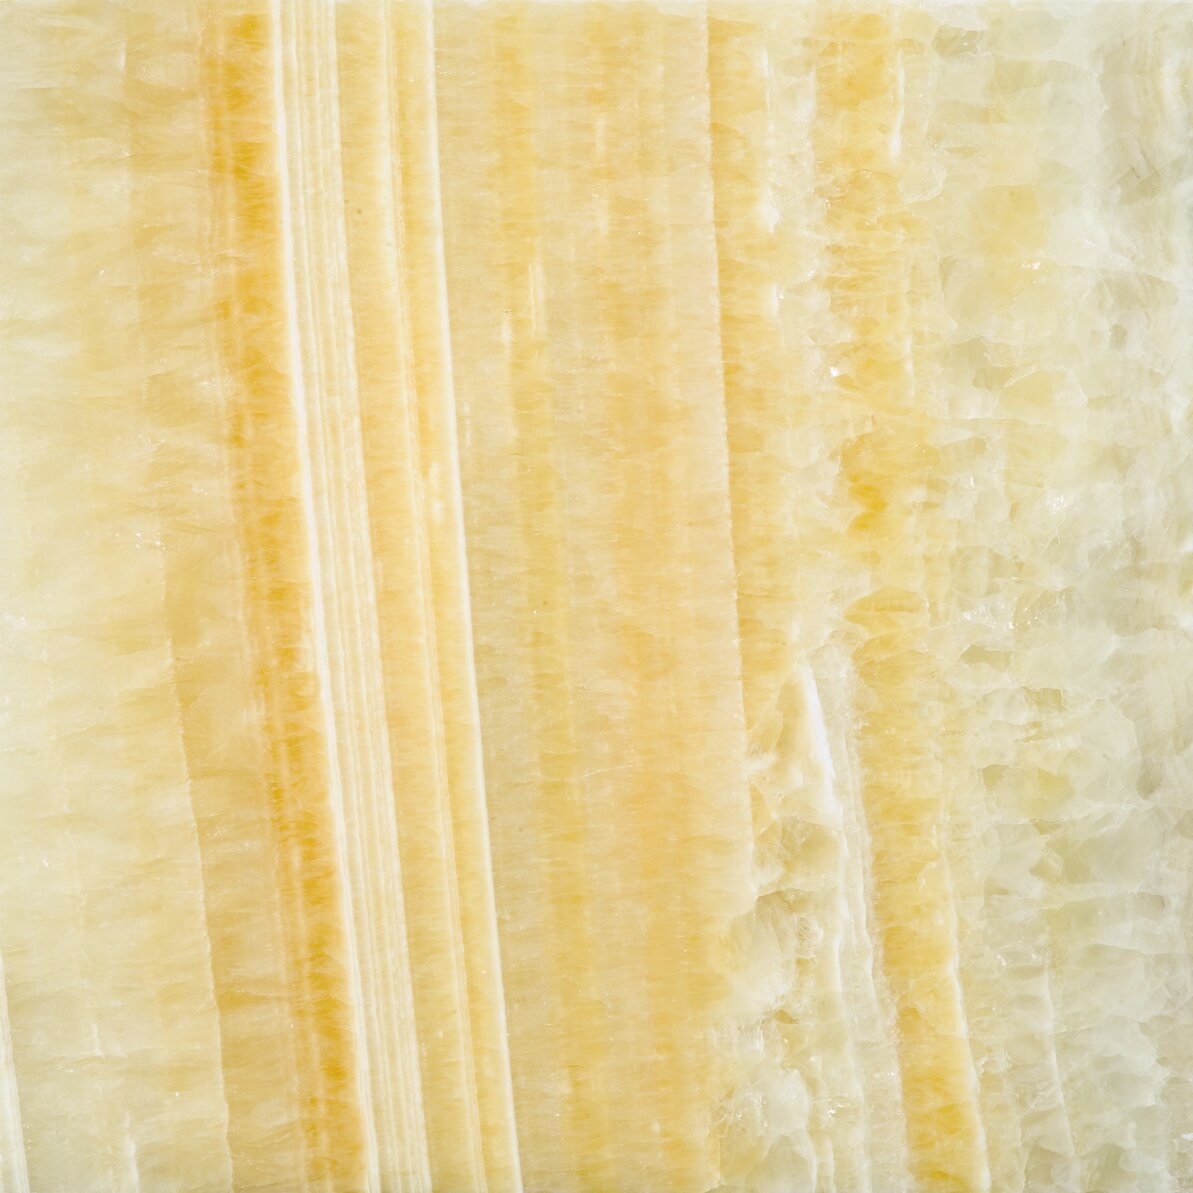 Onyx Stone Flooring : Emser tile natural stone quot onyx field in